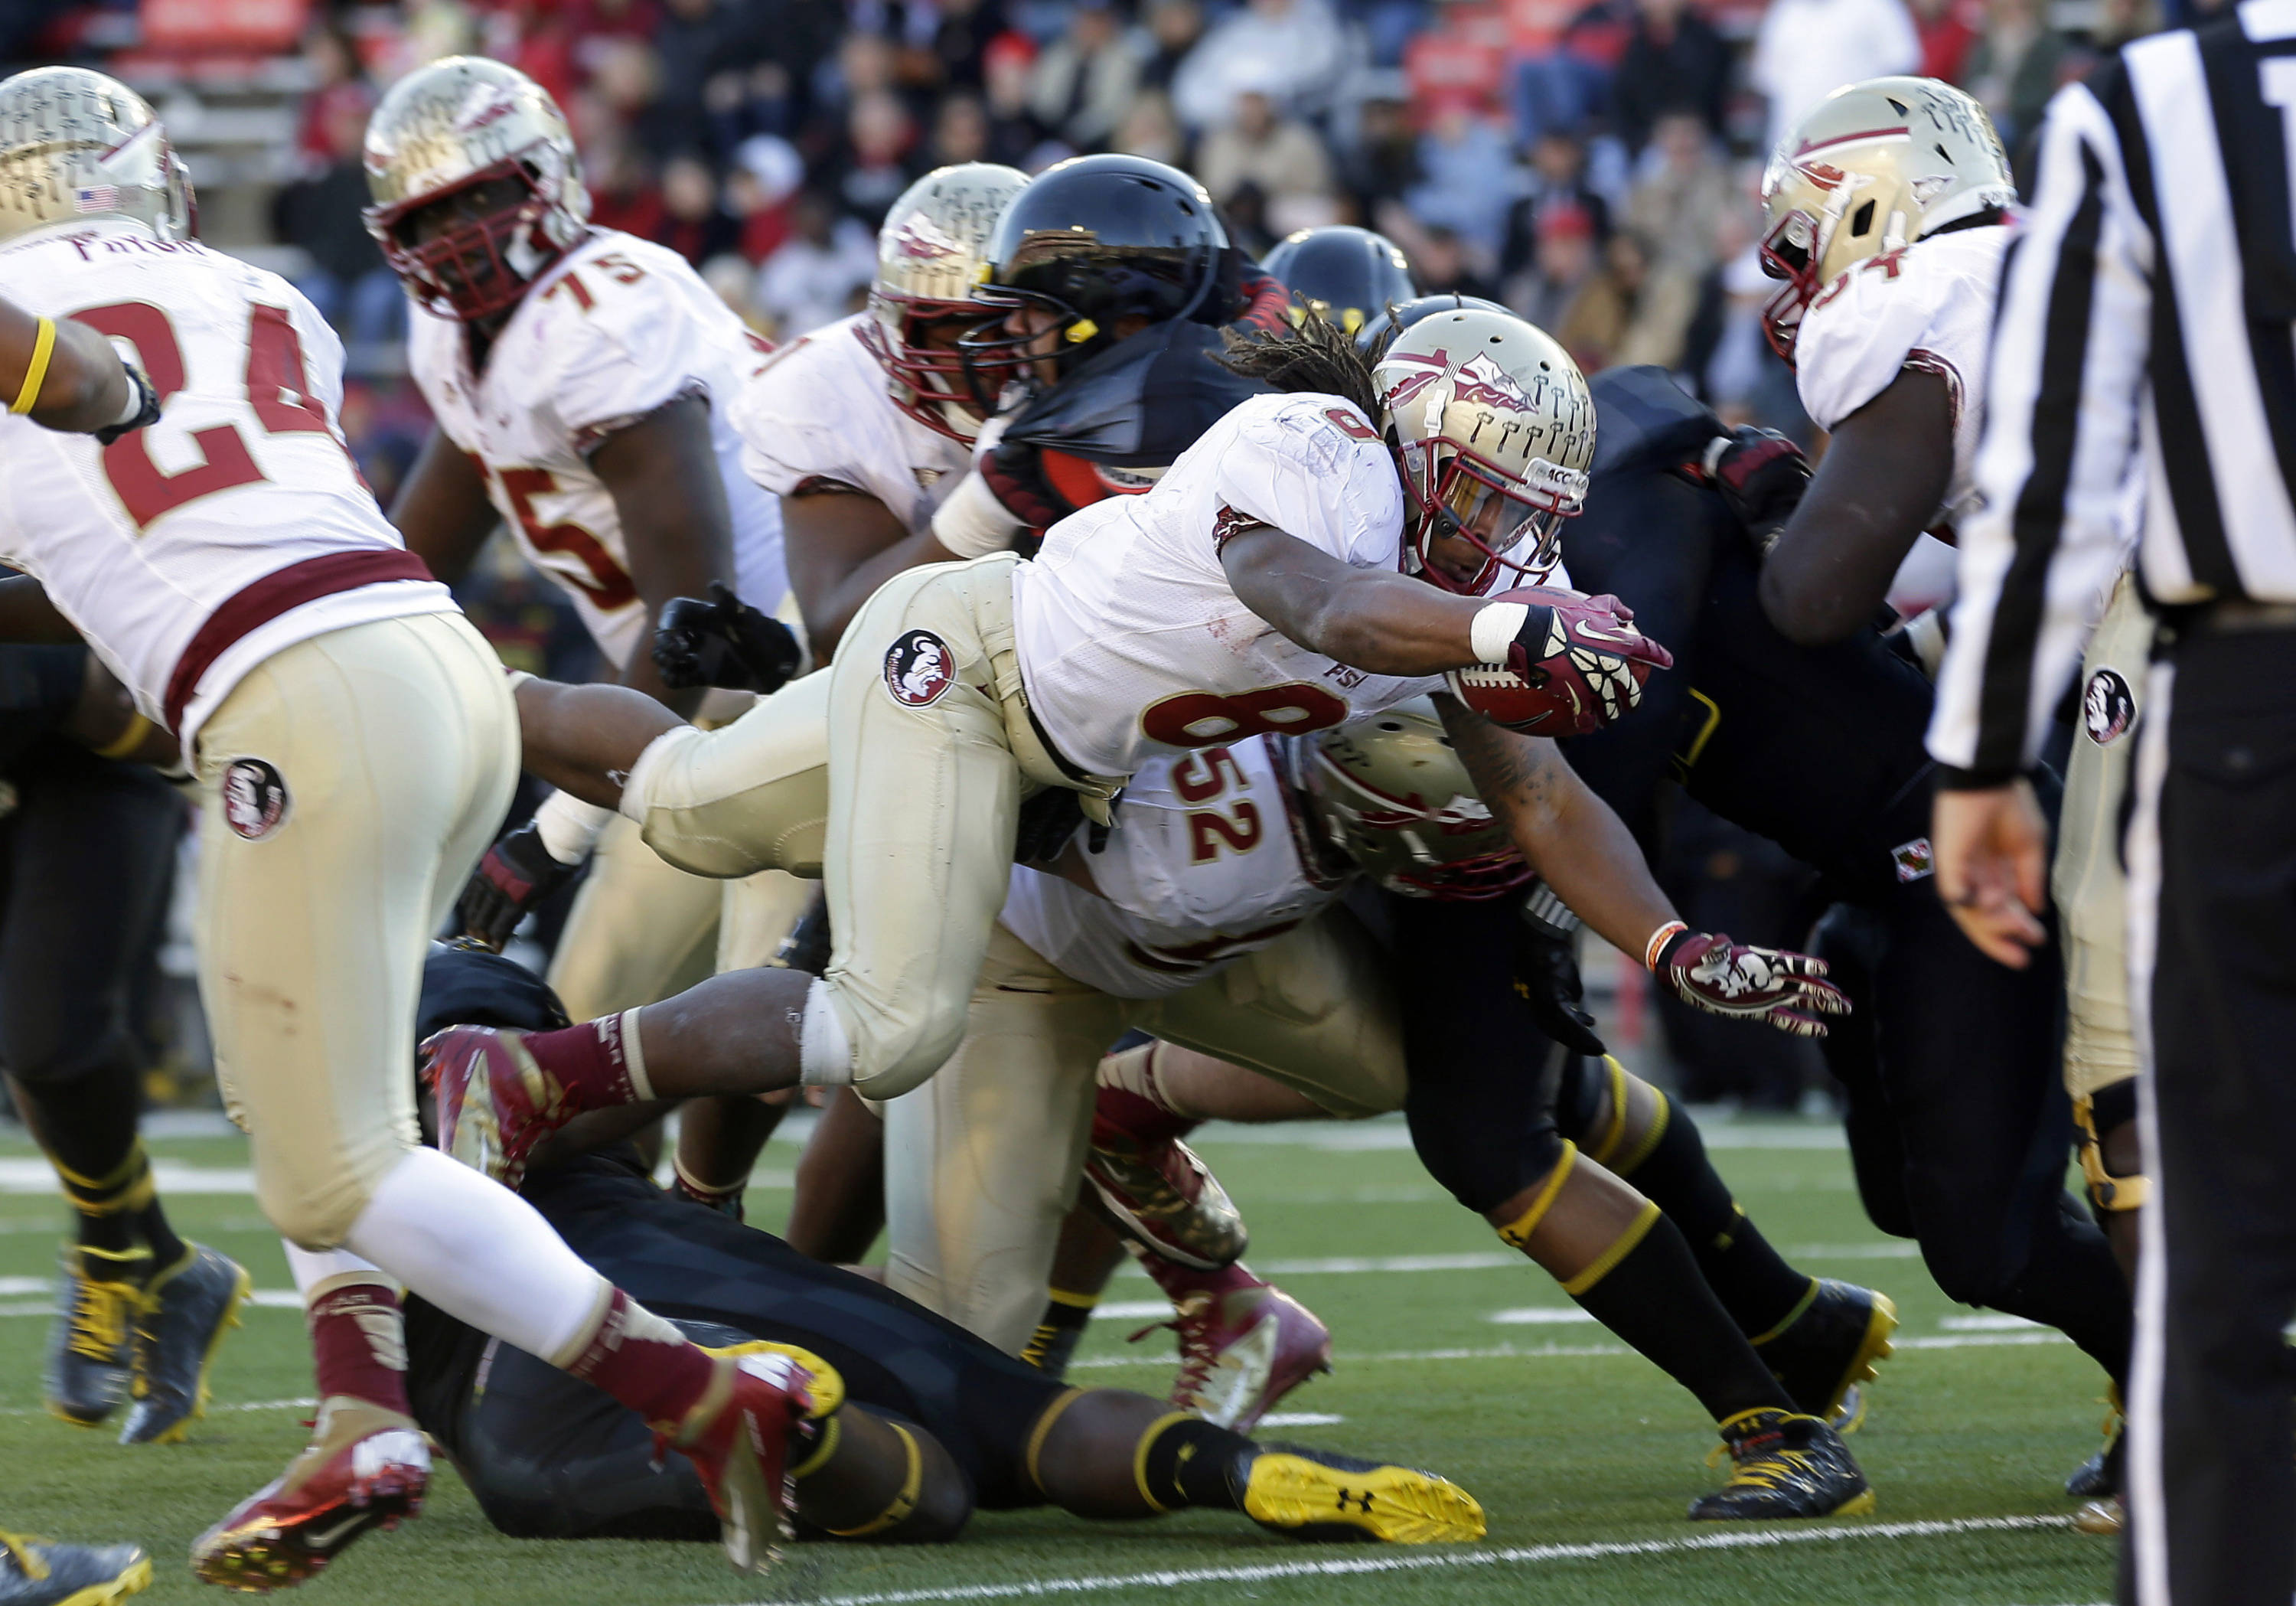 Running back Devonta Freeman dives into the end zone for a touchdown in the second half of an NCAA college football game against Maryland in College Park, Md., Saturday, Nov. 17, 2012. Florida State won 41-14. (AP Photo/Patrick Semansky)